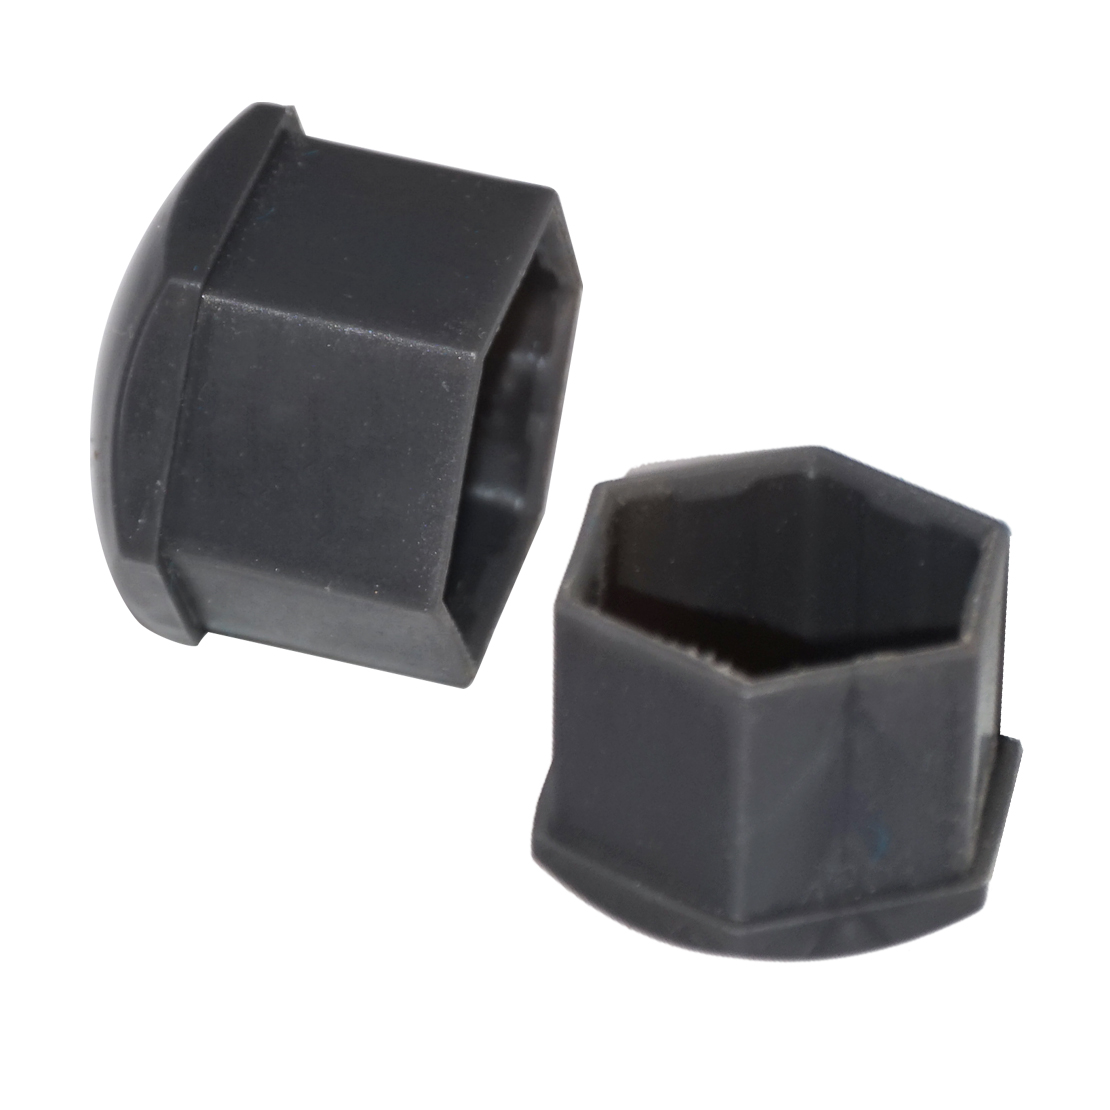 16x Wheel Lug Nut Center Cover 4x Locking Types Caps